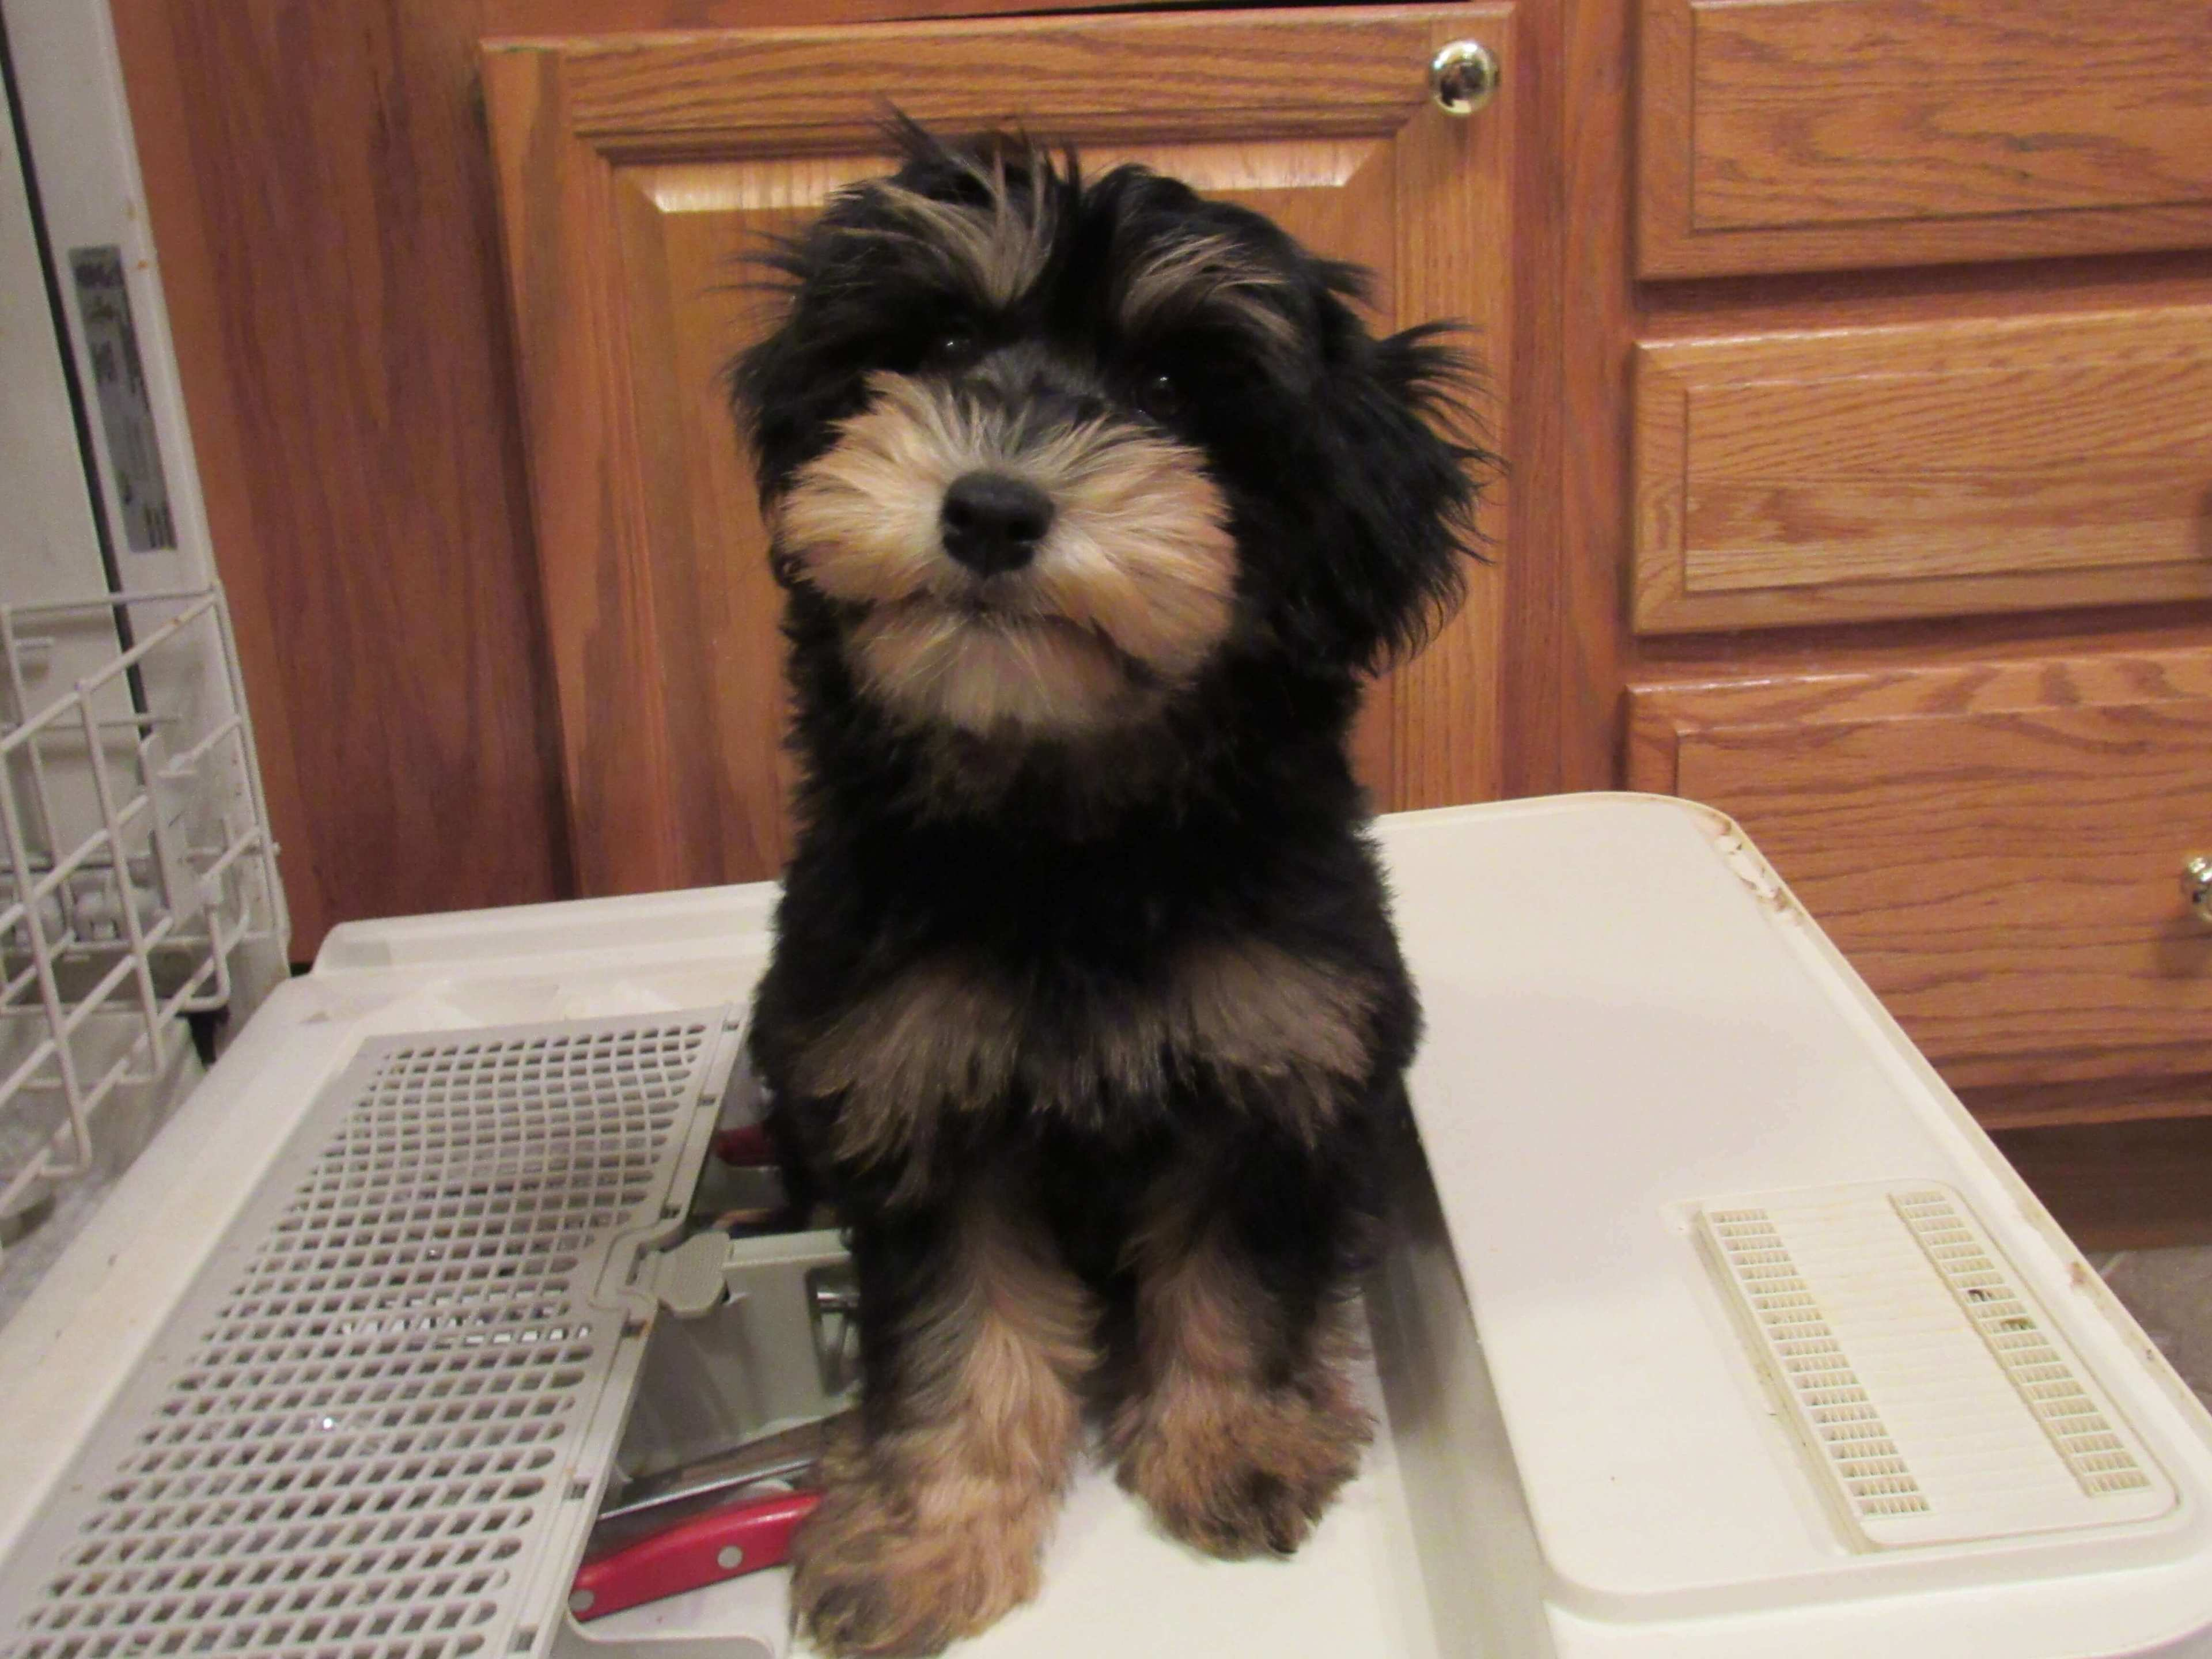 Liberty as a puppy sitting on the inside of an open dishwasher door